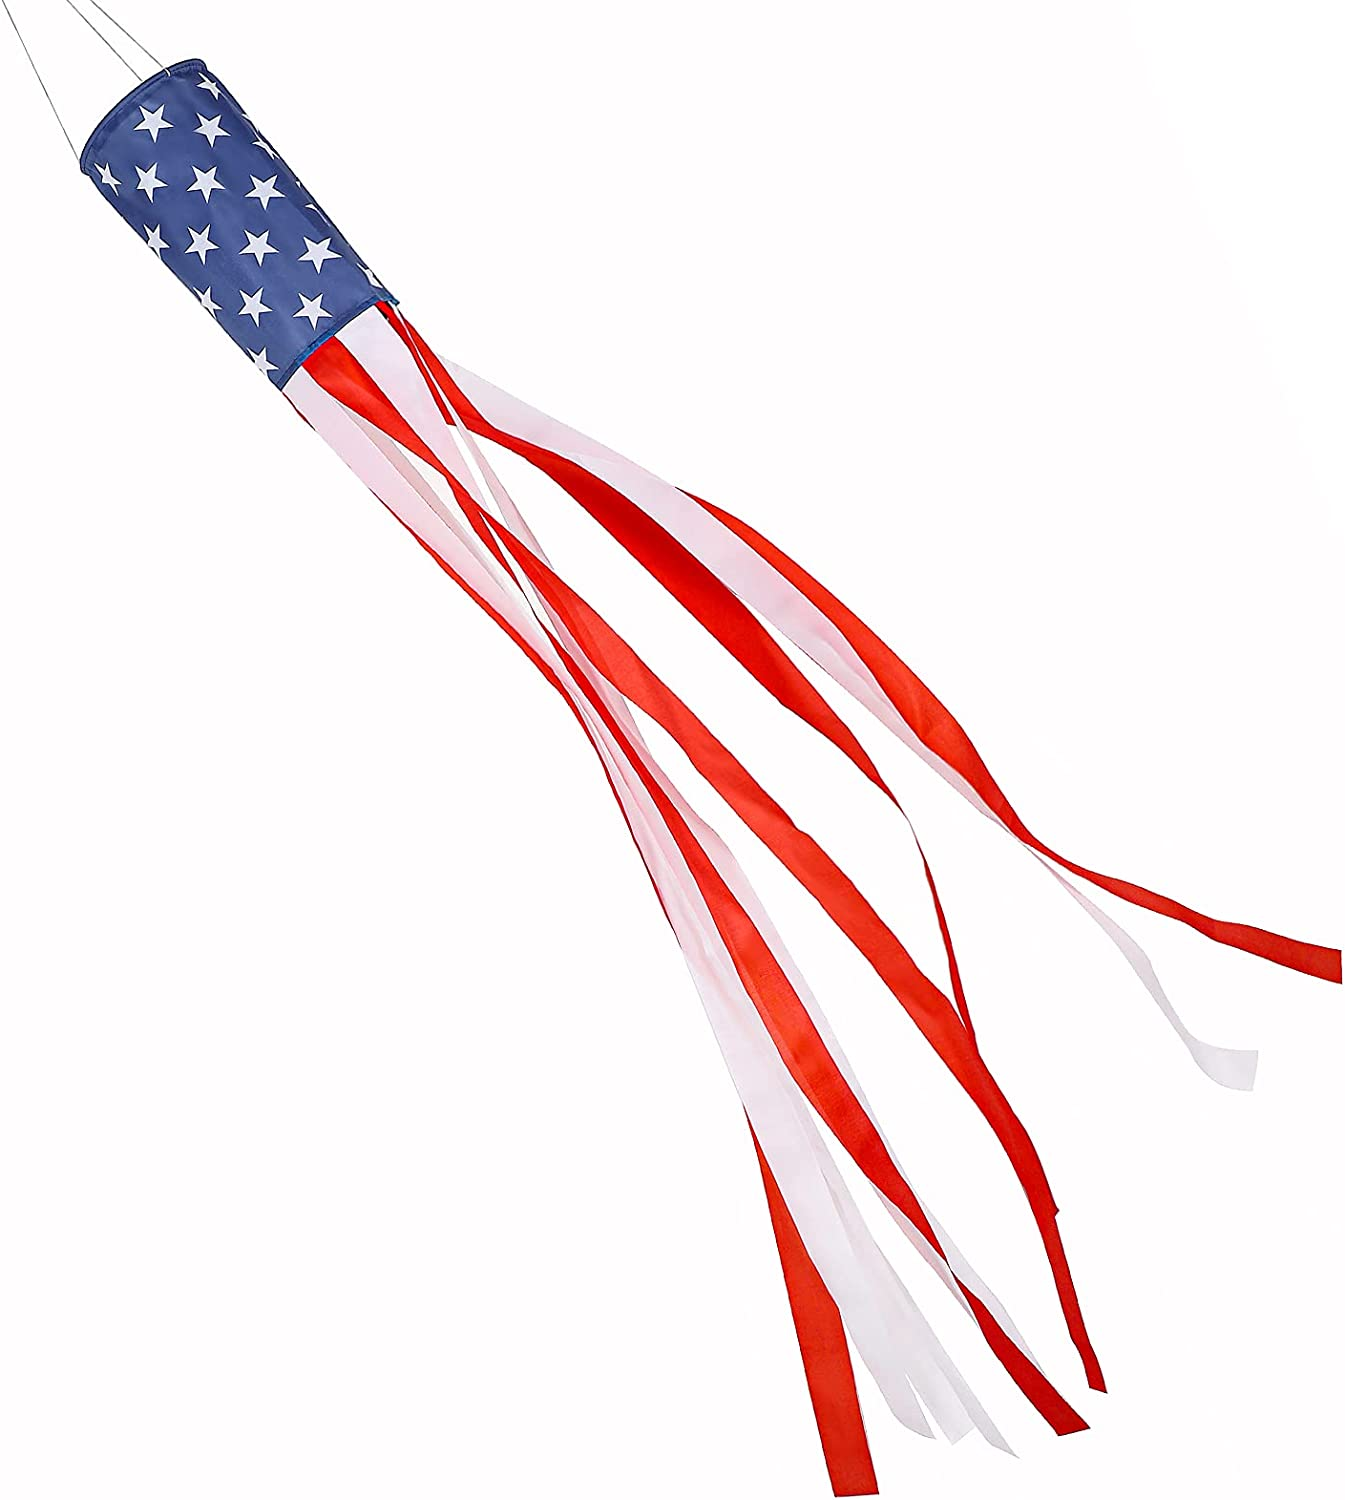 LessMo 60 Inch American Flag Windsock, Stars and Stripes USA Patriotic Decorations, Outdoor Hanging 4th of July Decor for Independence Day Flag Day Memorial Day and More